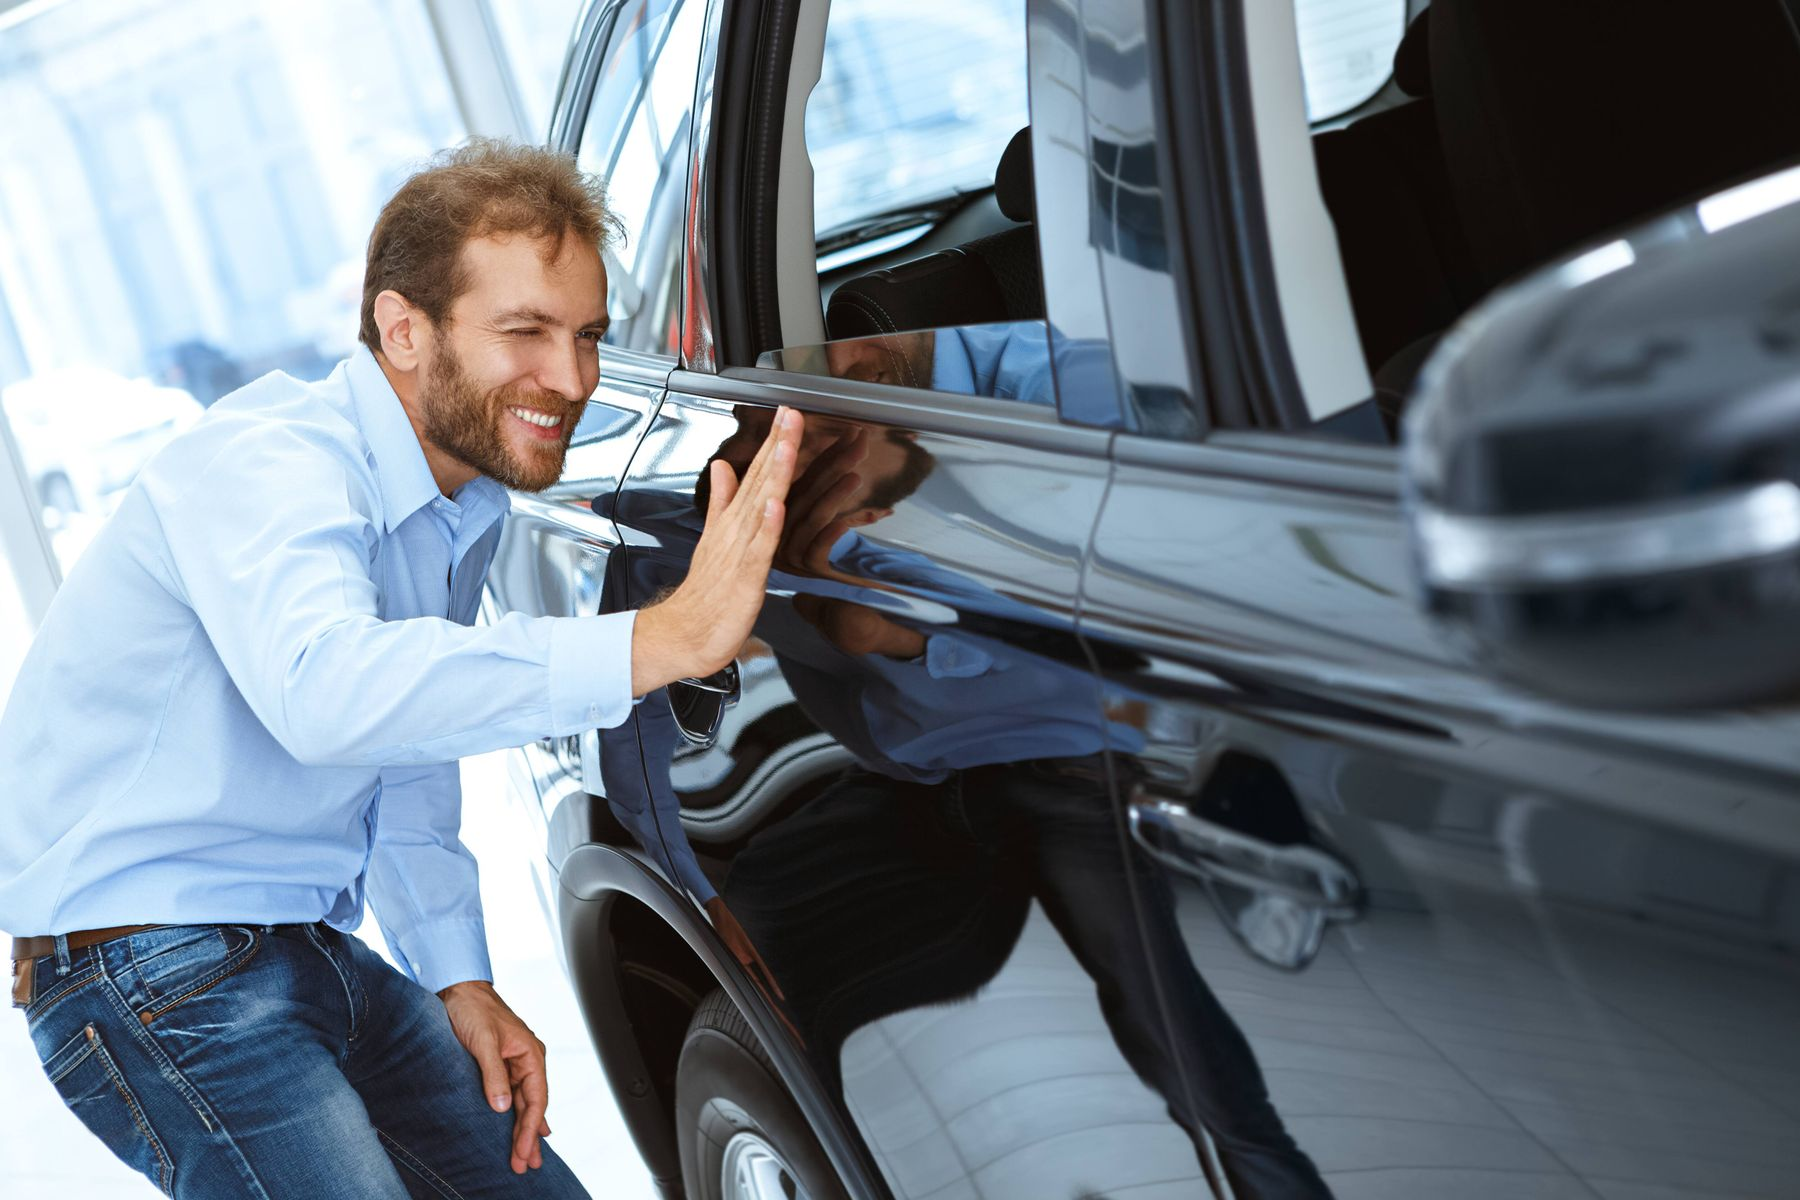 How to Remove Paint Stains from your Car | Cleanipedia